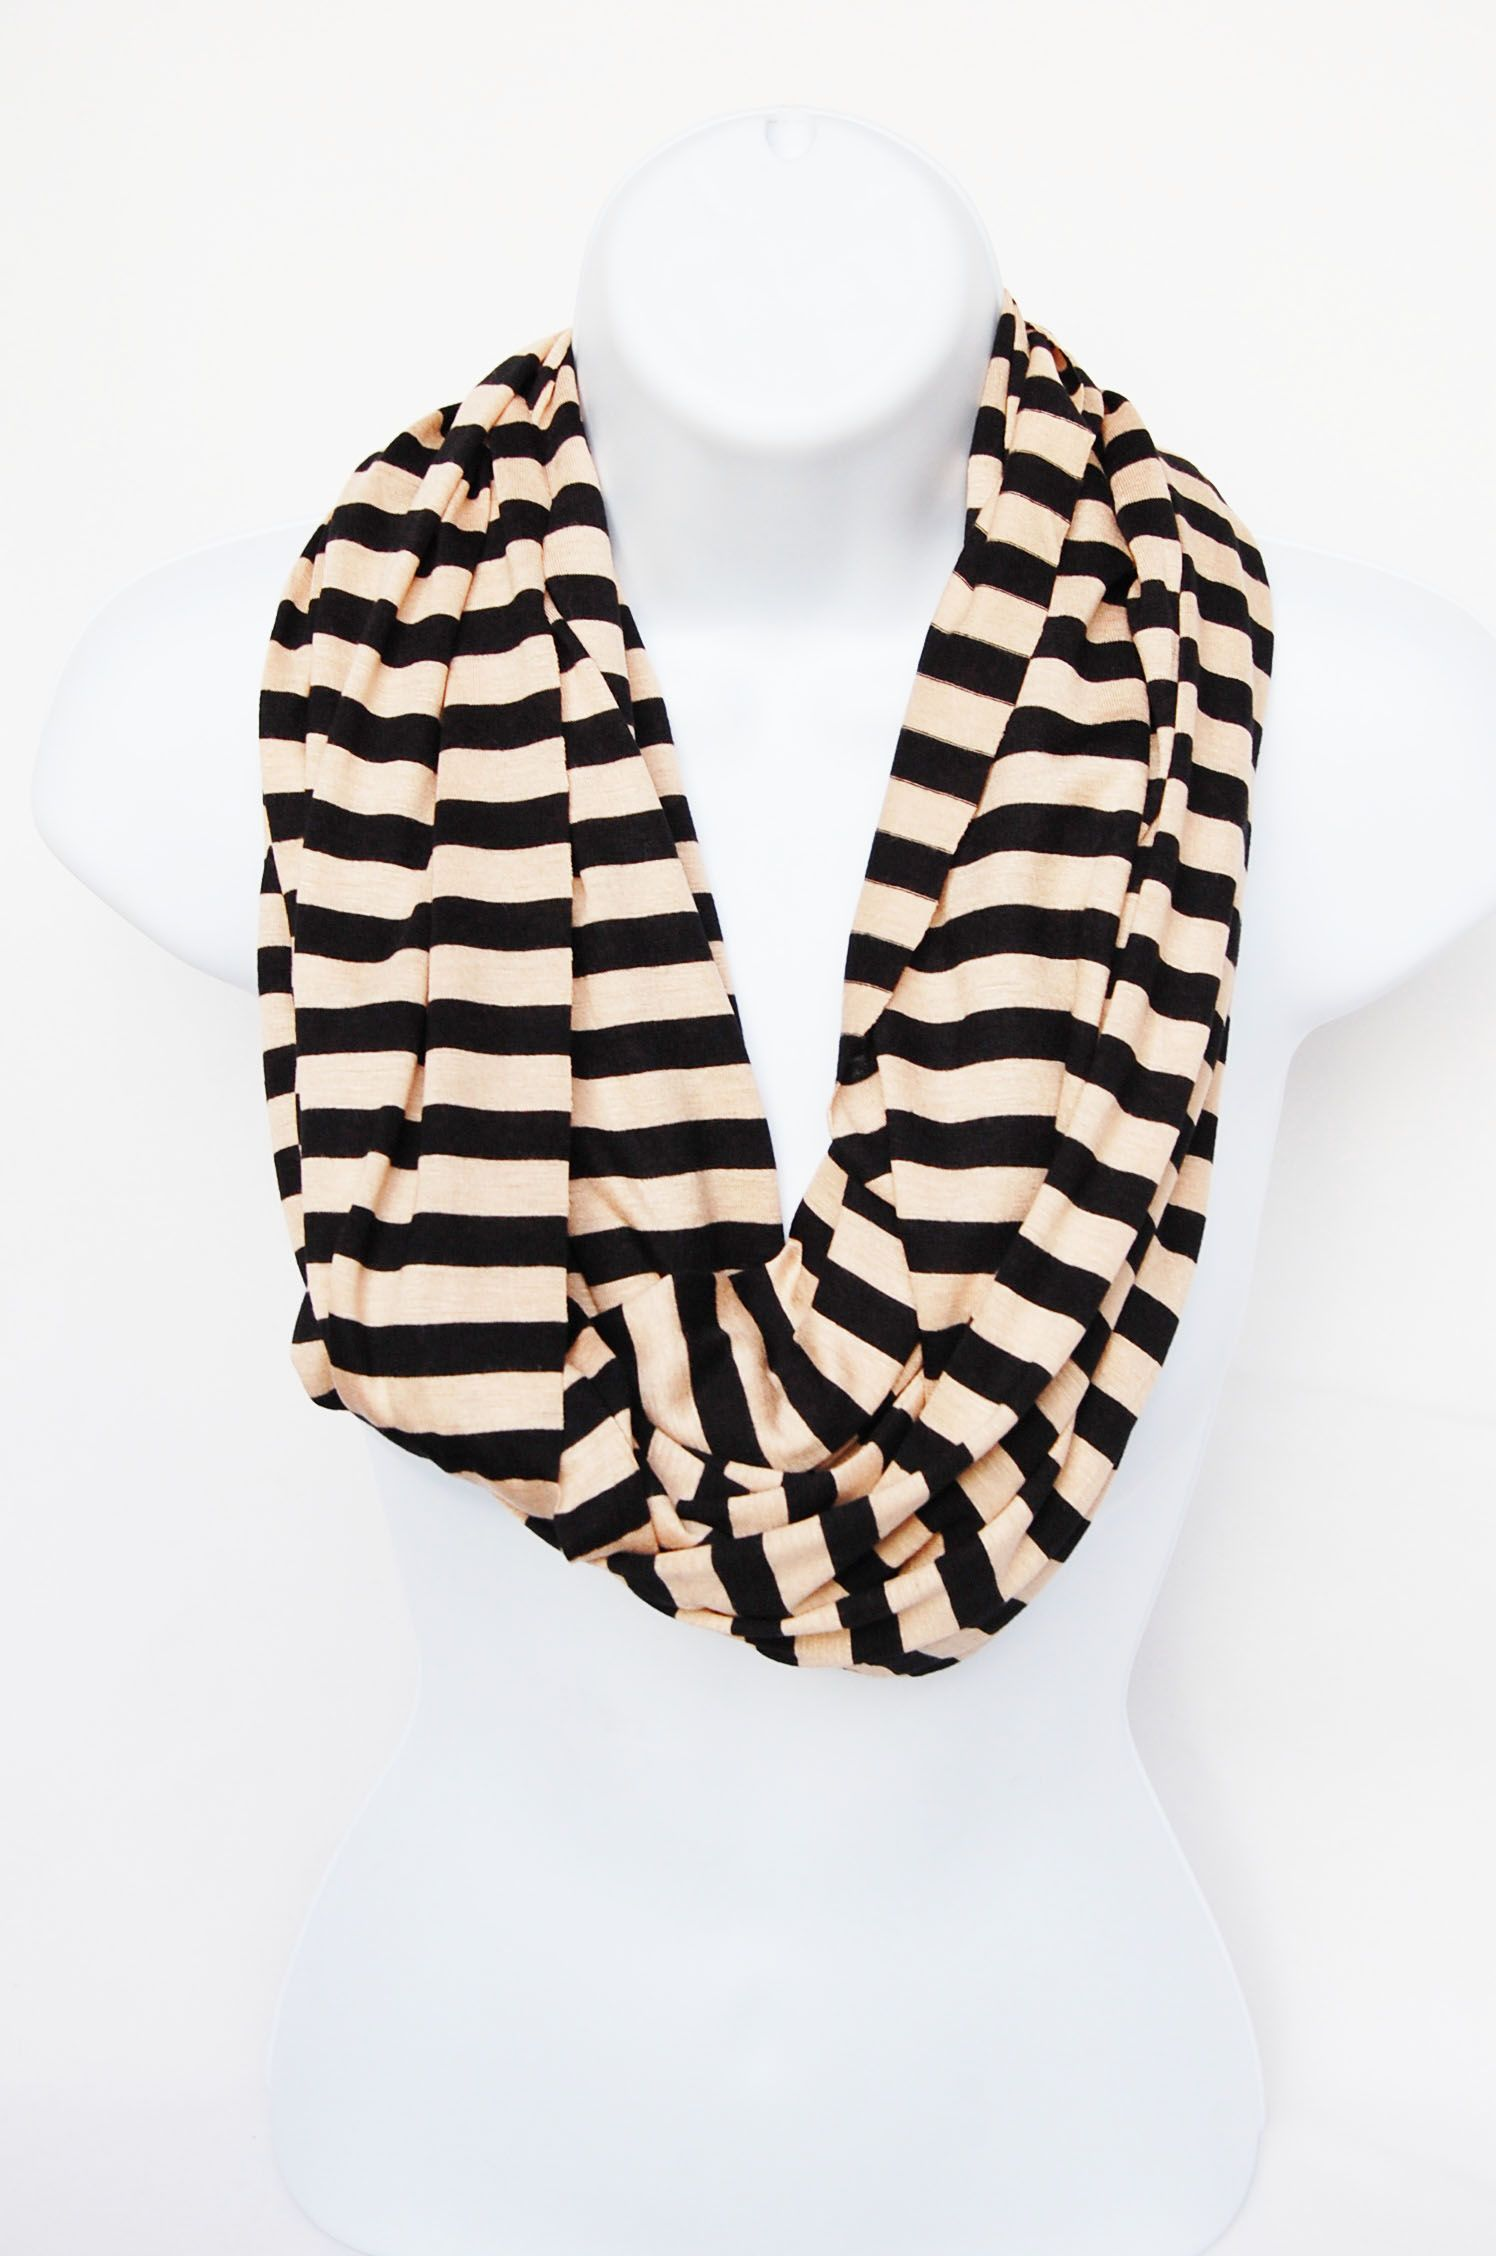 Tan and Black striped infinity scarf. Knit material and light weight ...